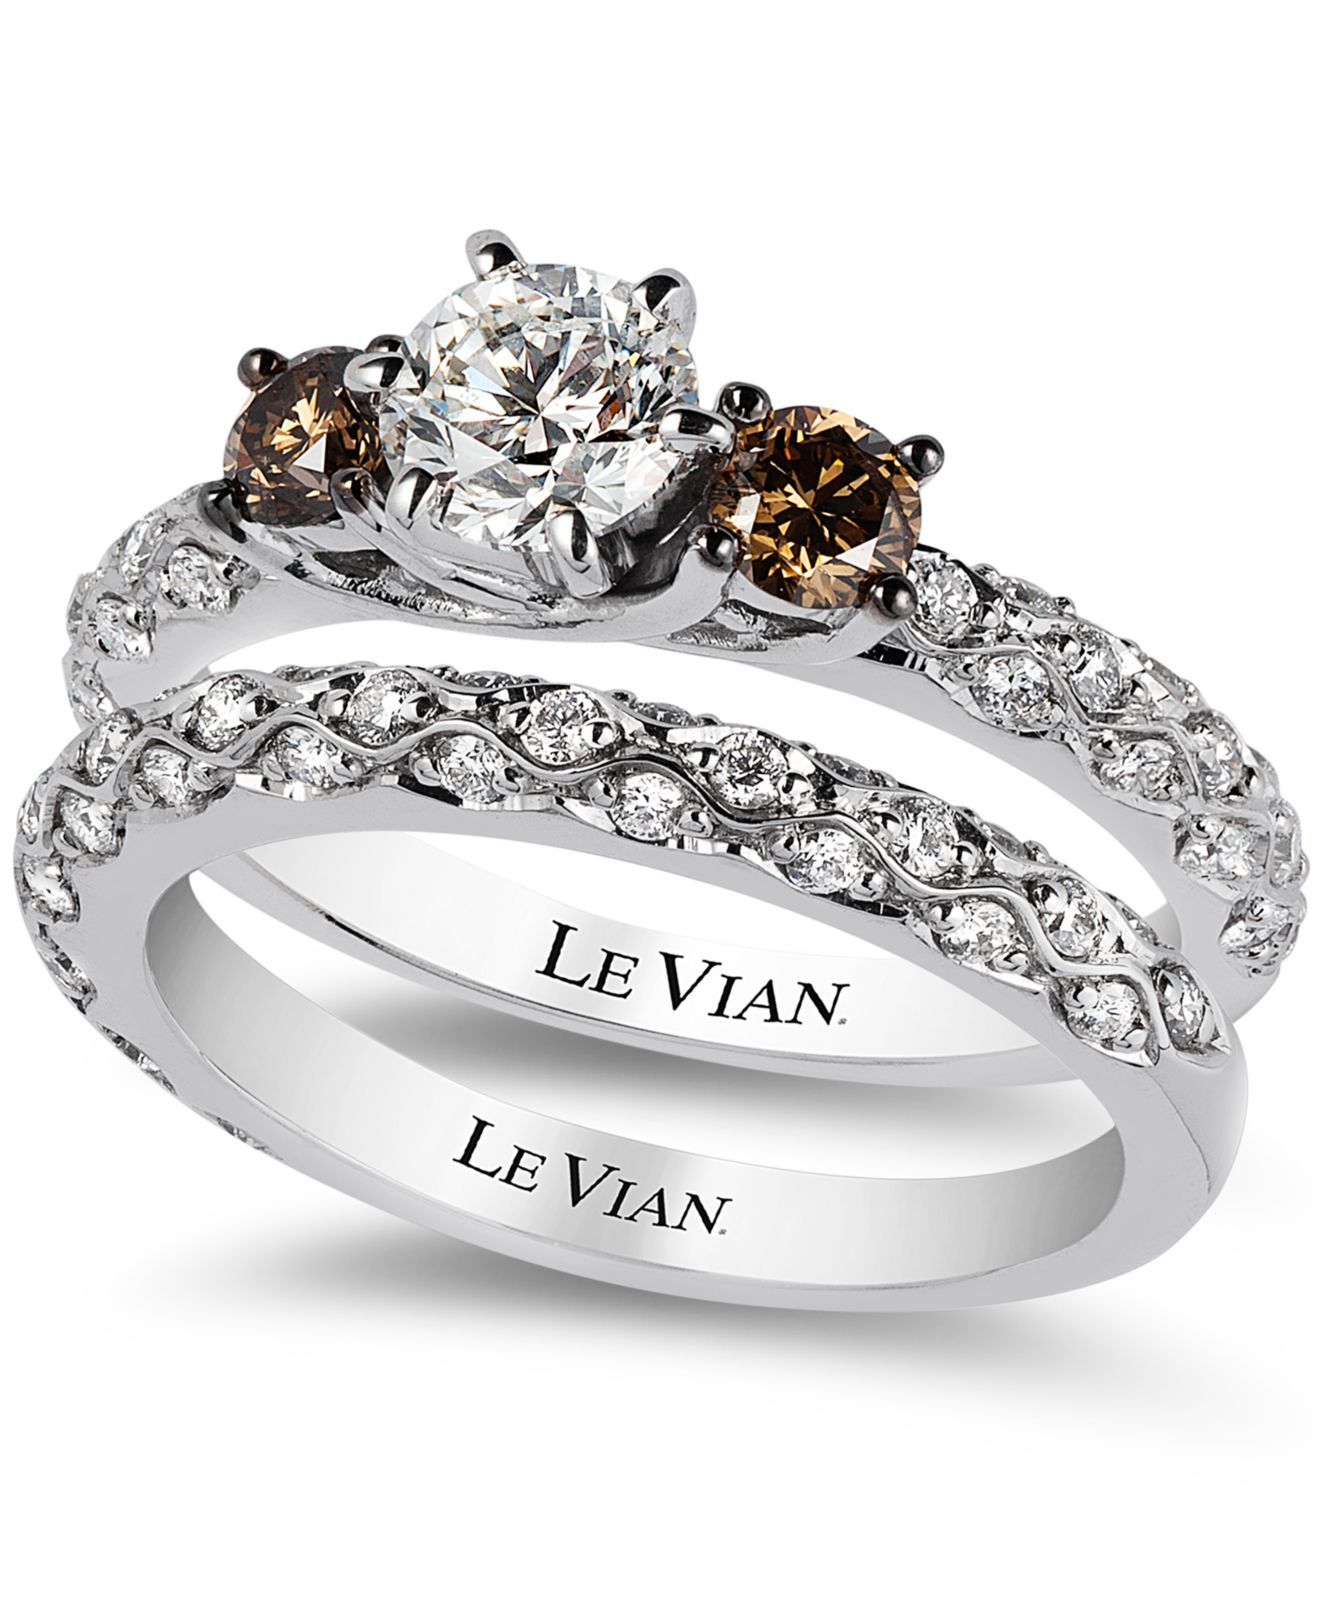 bridal white certified diamond and chocolate diamond engagement ring set in 14k white gold 1 3 8 ct t w